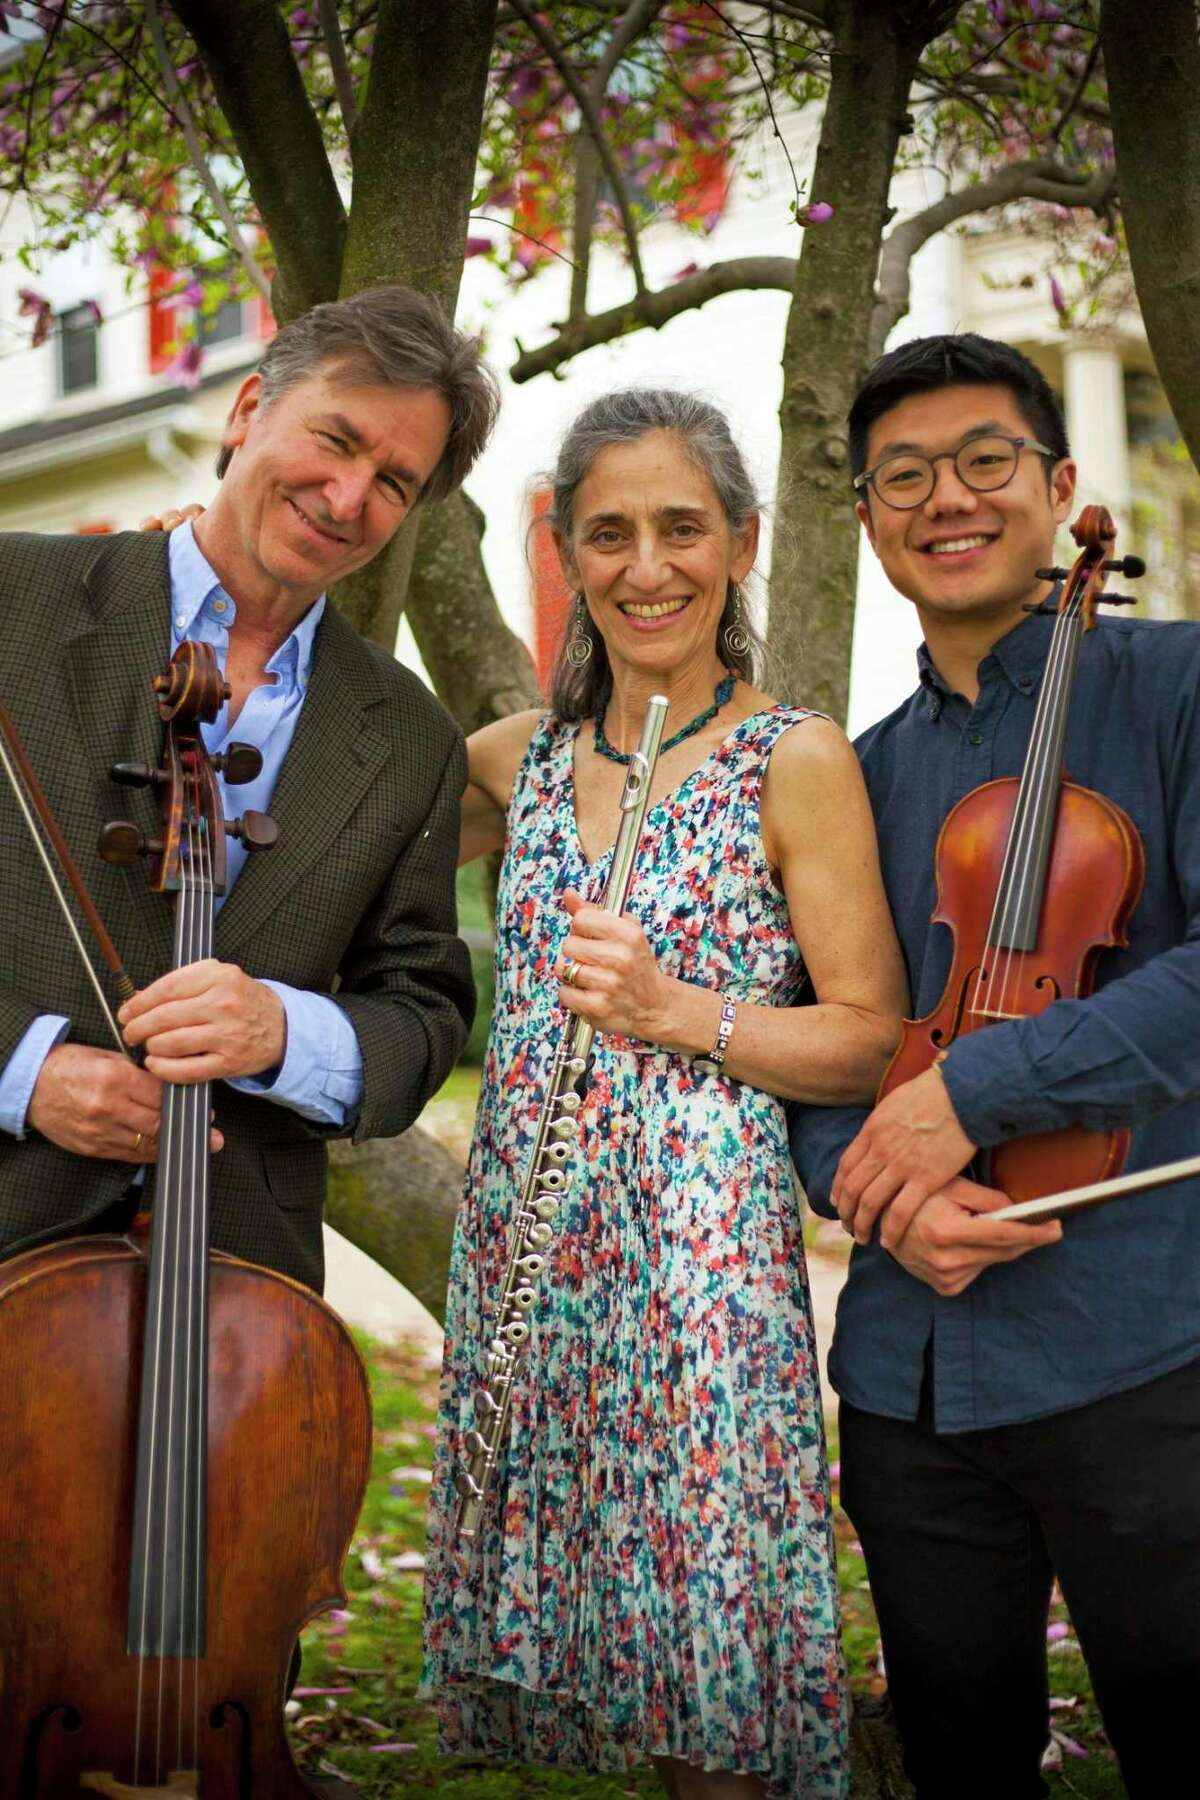 From left: Sherman Chamber Ensemble Artistic Director Eliot Bailen (cello); Susan Rotholz (flute); and Door Na (violin).